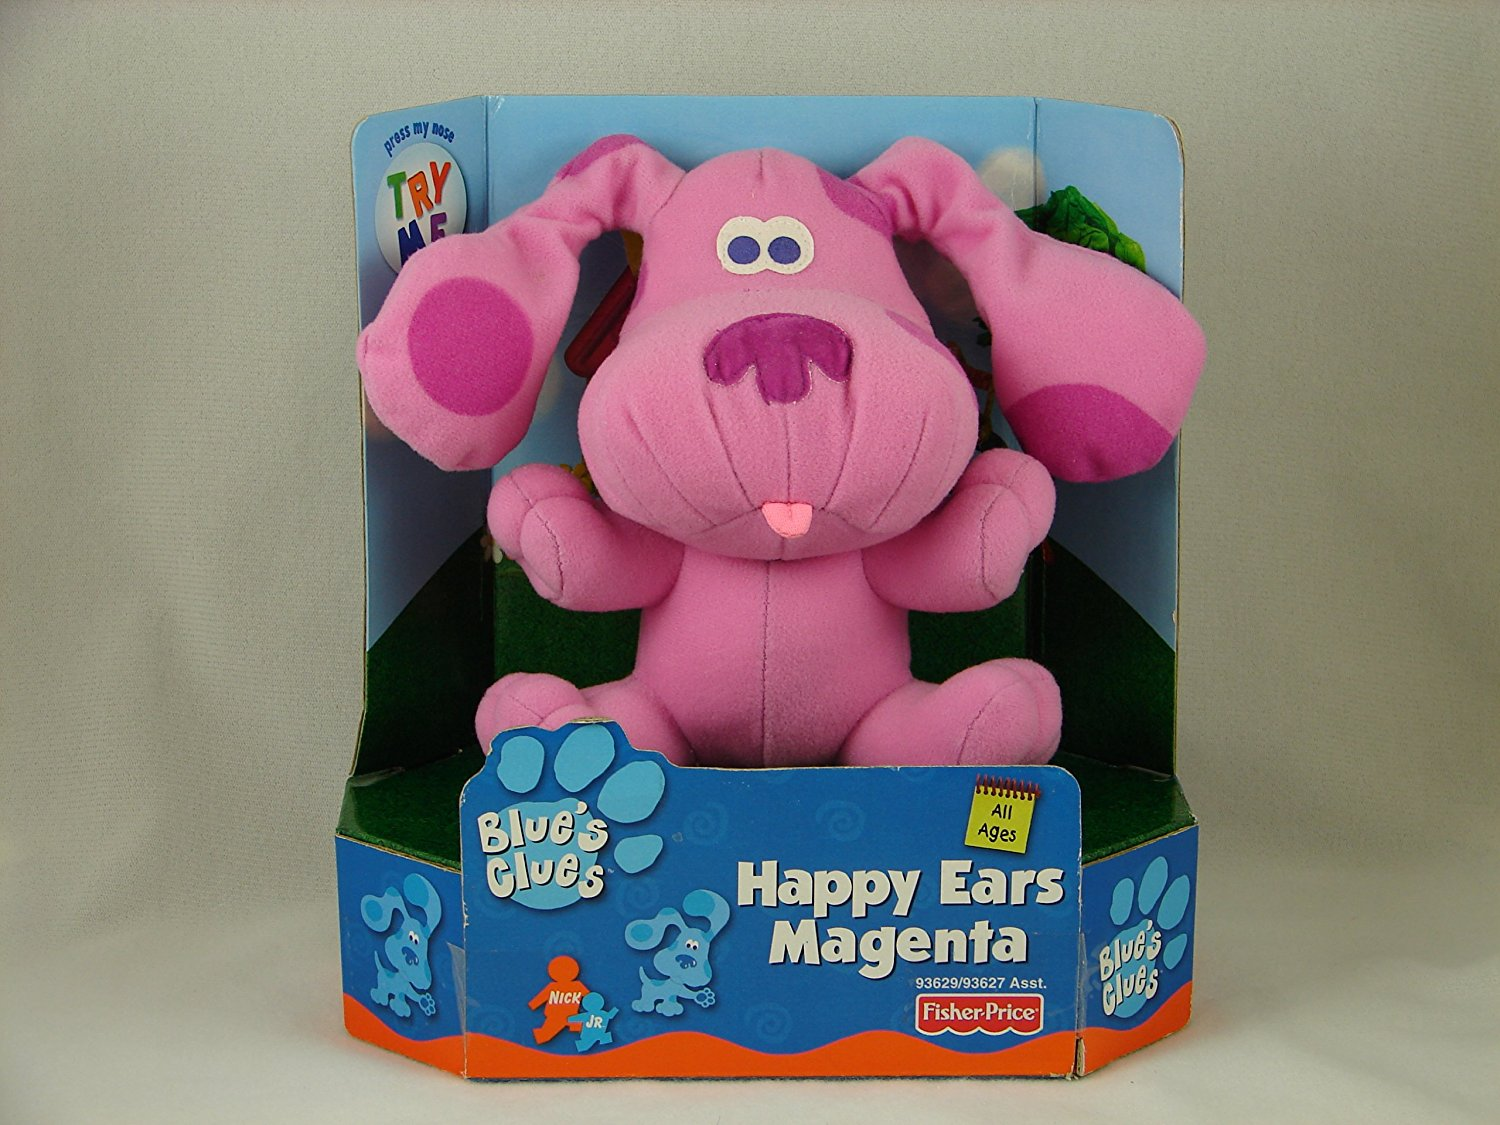 Buy Fisher Price Blues Clues Magenta Stuffed Animal In Cheap Price